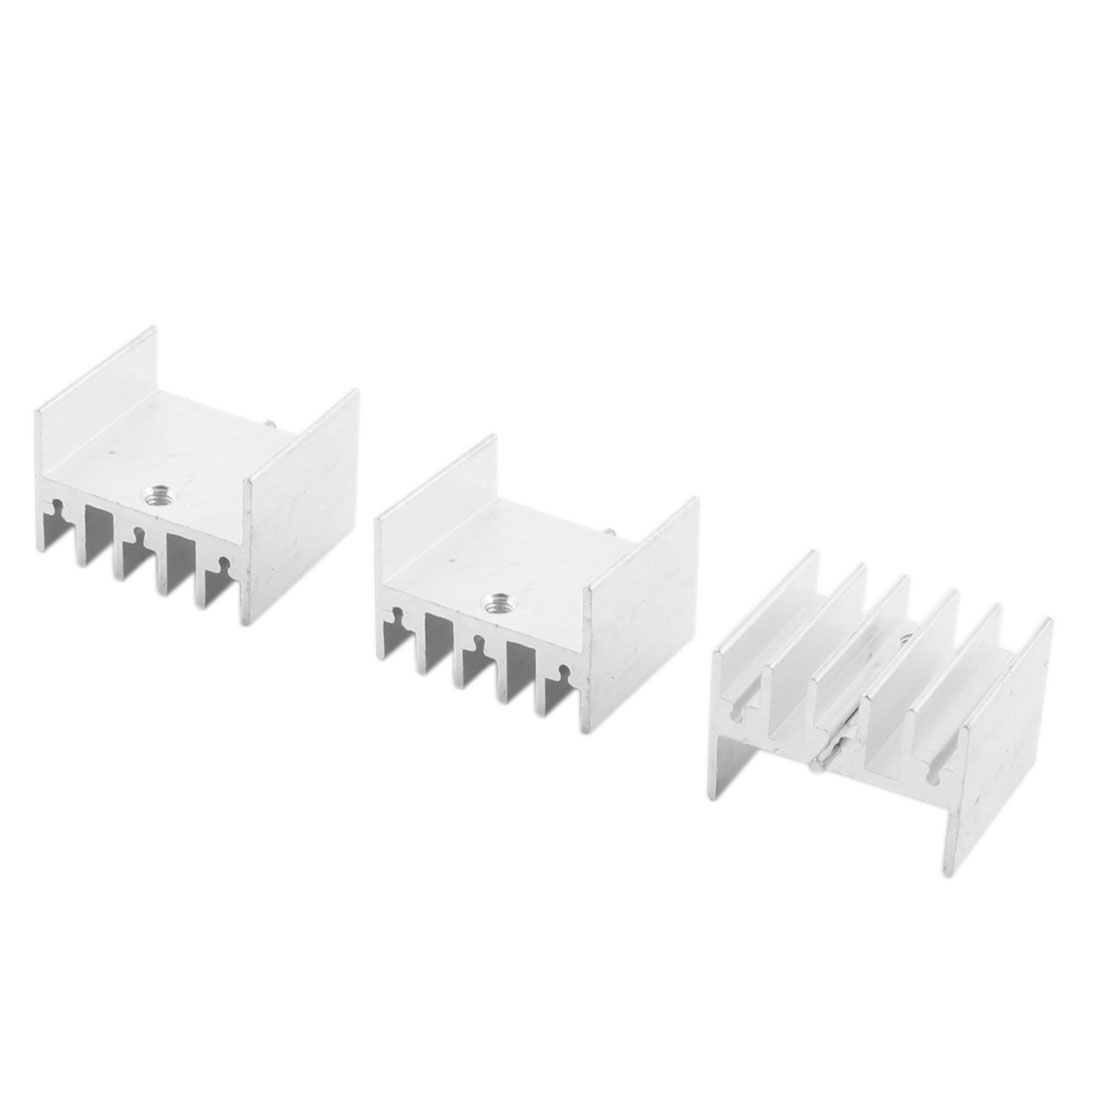 3pcs 23x16x20mm Aluminium Radiator Cooler Heatsink Heat Sink Cooling Fin + Needle for PCB Board